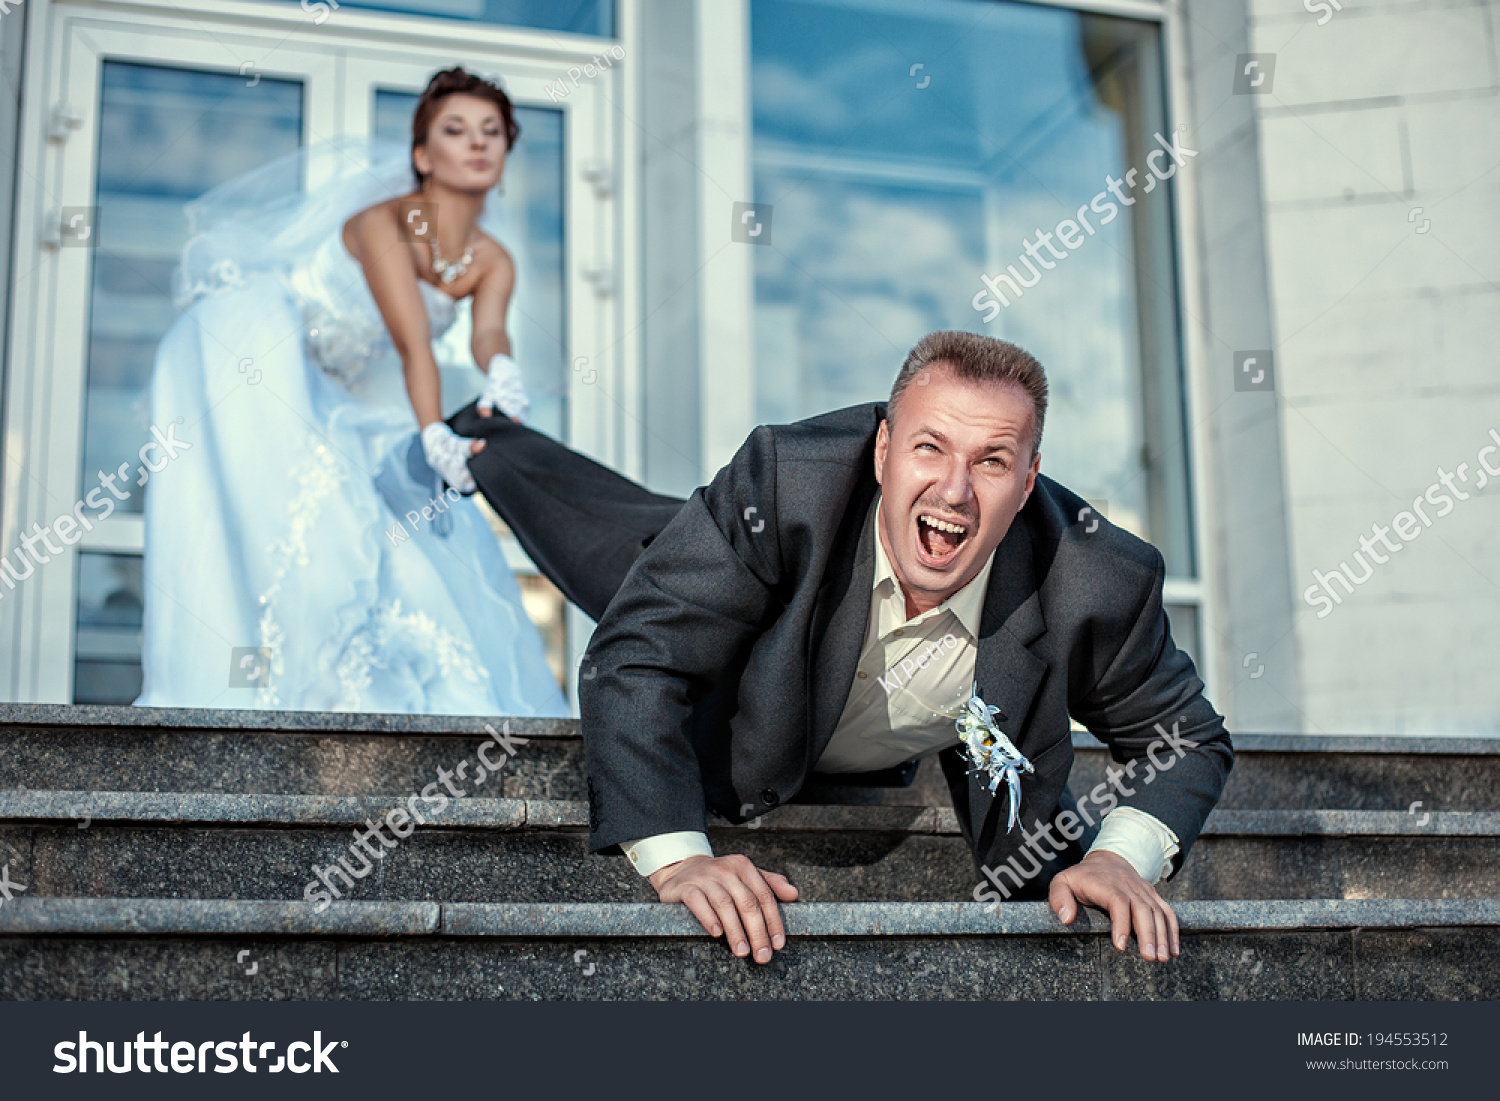 Bride Leg Pulls Groom Wedding Stock Photo (Safe to Use) 194553512 ...